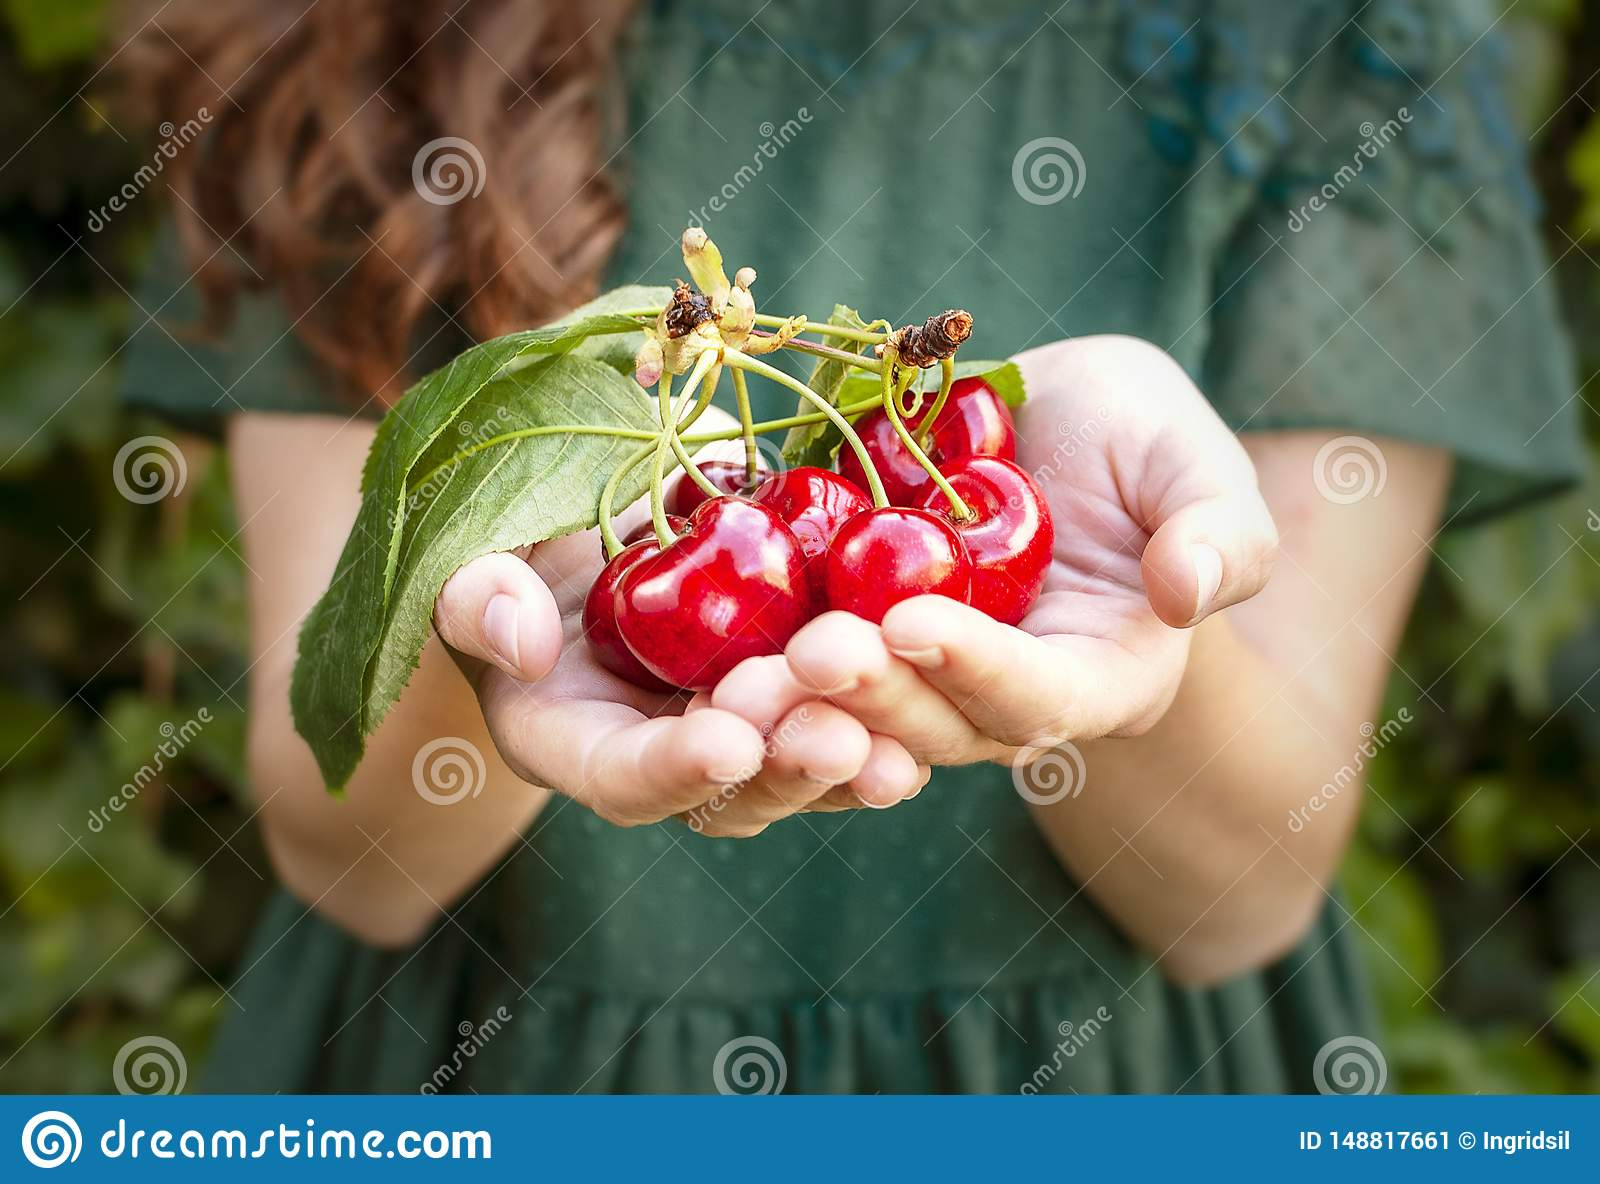 Isolated young woman holding some cherries in her hands. Big red cherries with leaves and stalks. One person on the background.